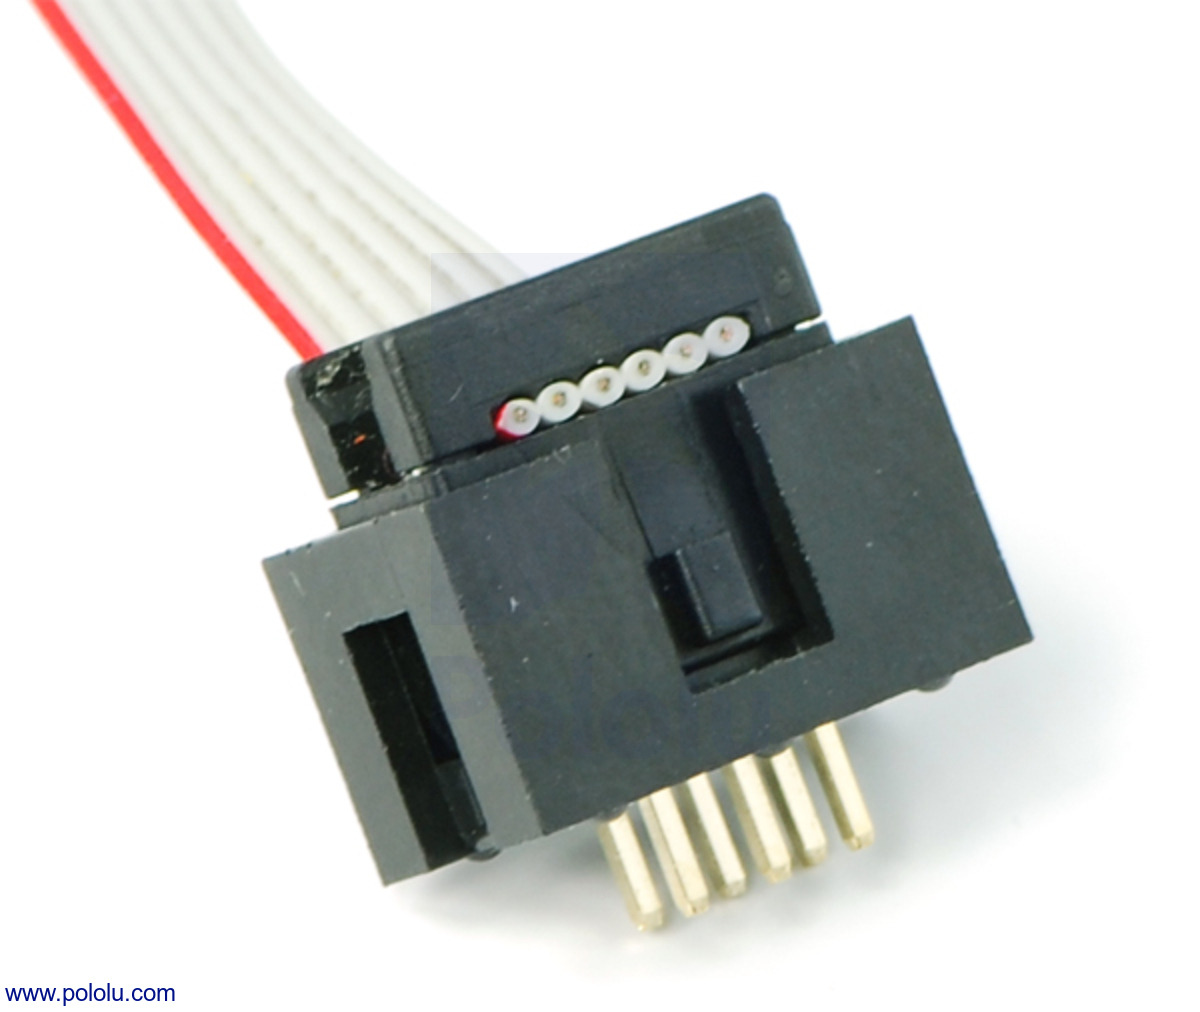 small resolution of shrouded 2 3 pin box header with a ribbon cable and idc connector plugged into it